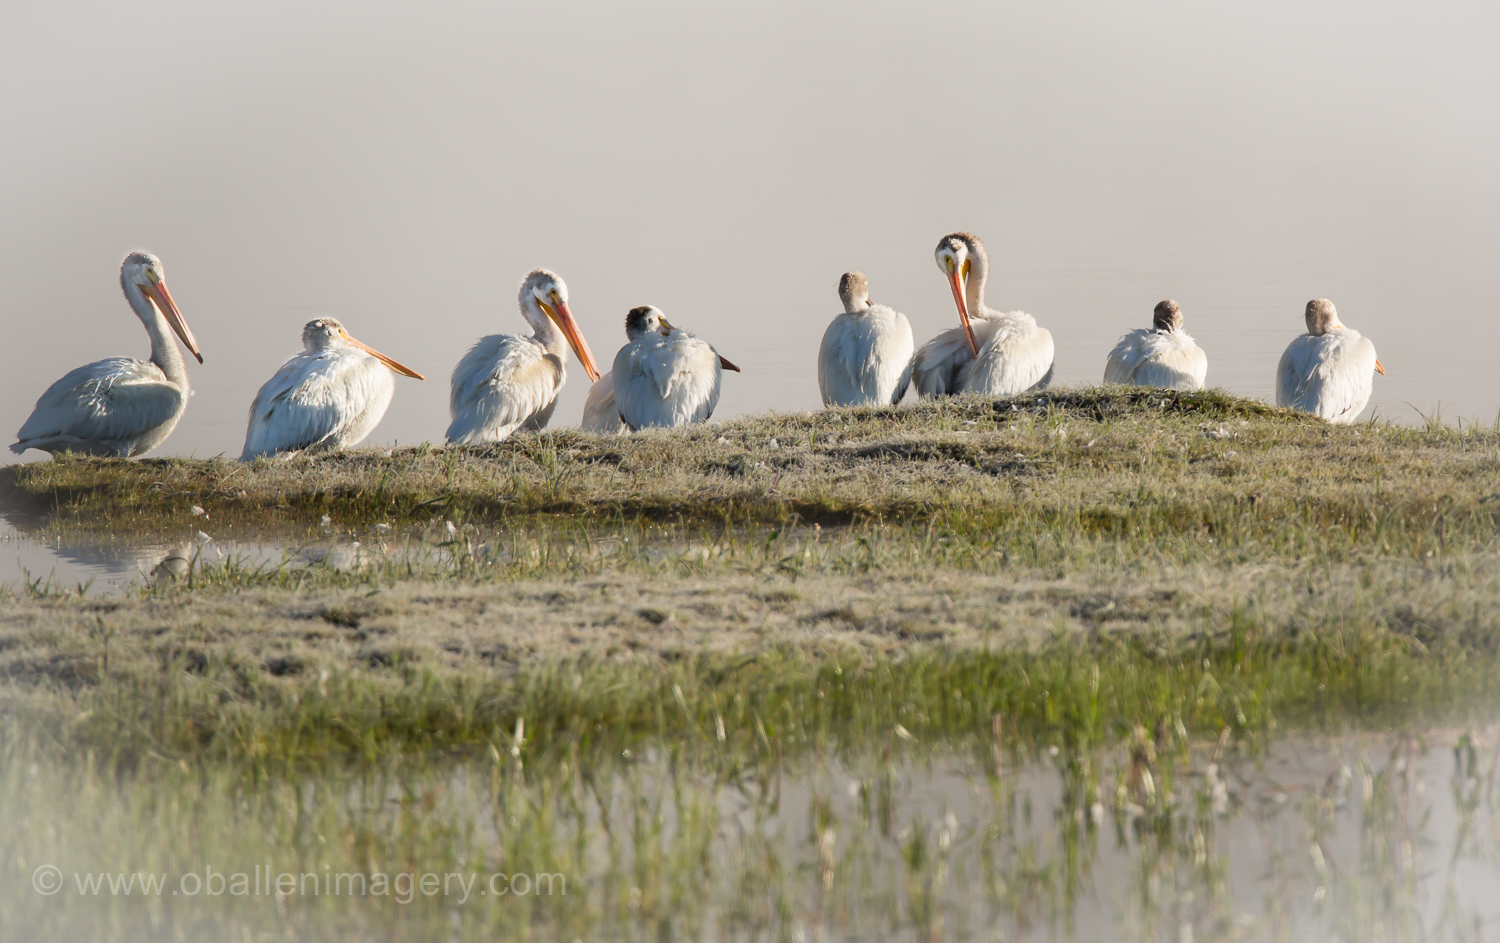 Pelicans along the Yellowstone River.